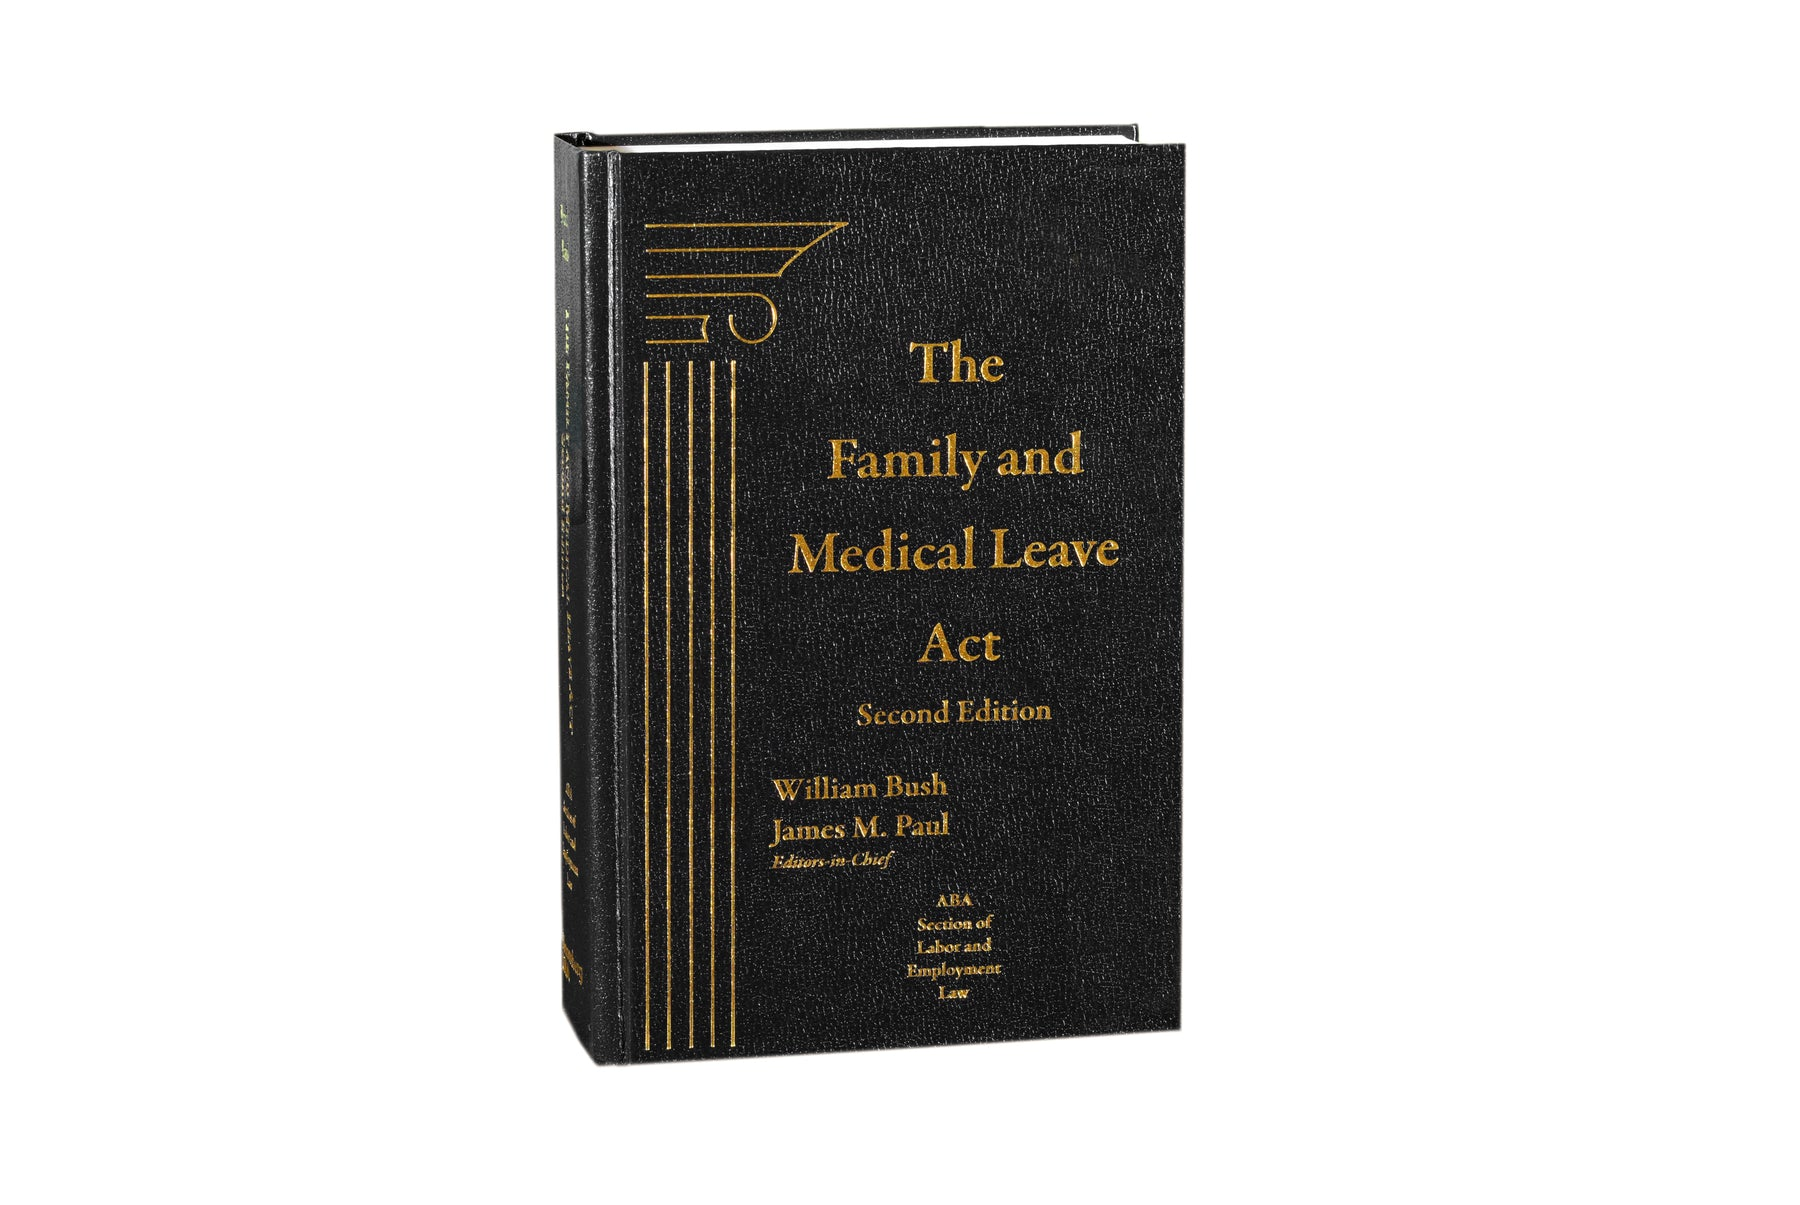 Family and Medical Leave Act, The, Second Edition